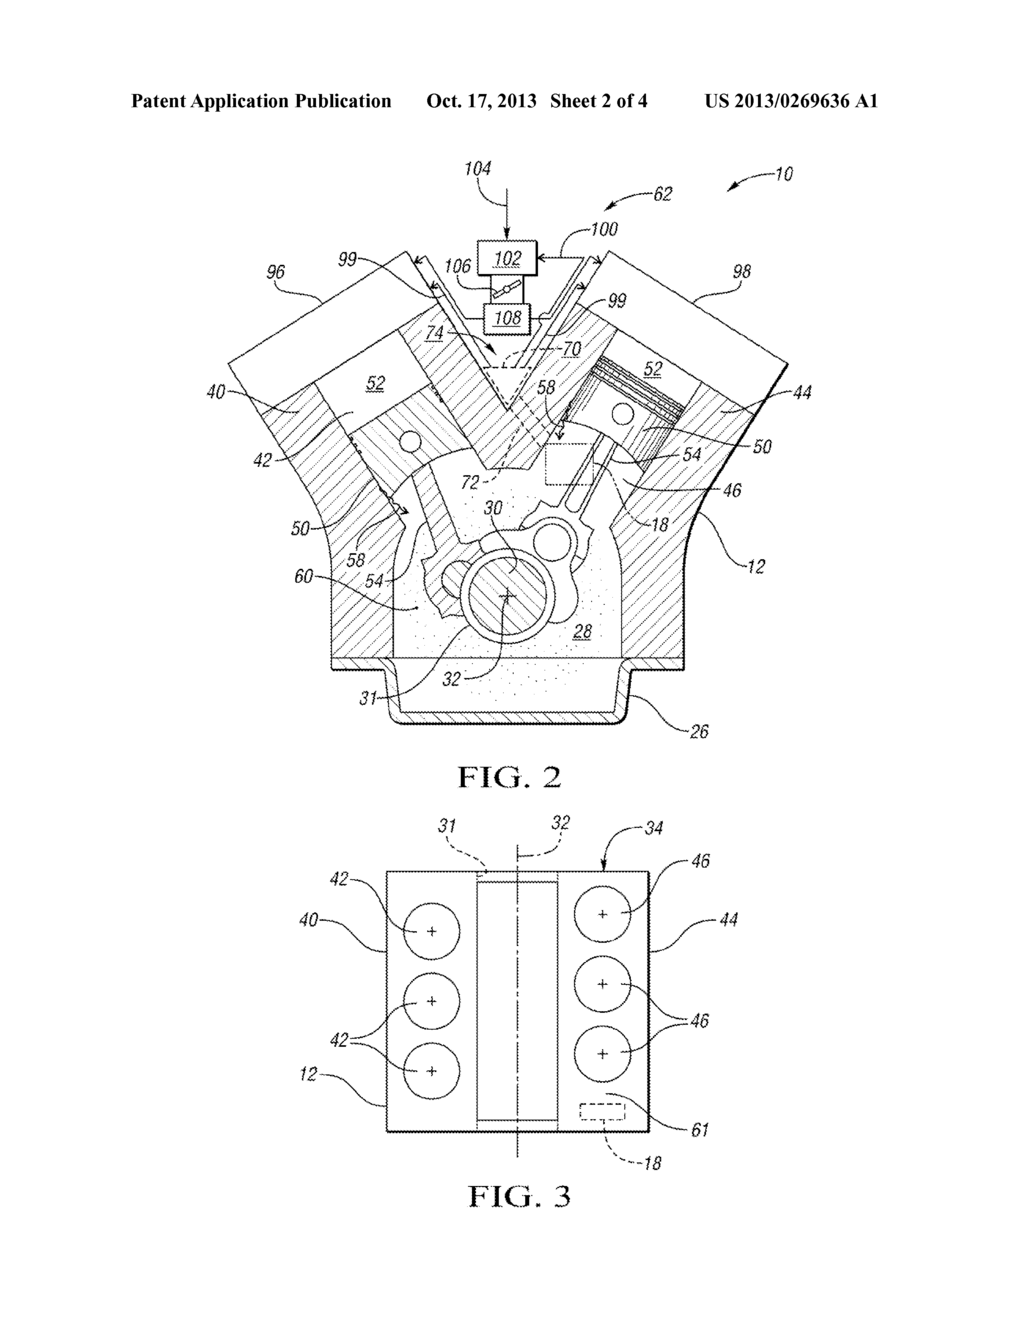 Engine Assembly With Block Mounted Air Oil Separator And Diagram Method Of Ventilating An Crankcase Schematic Image 03